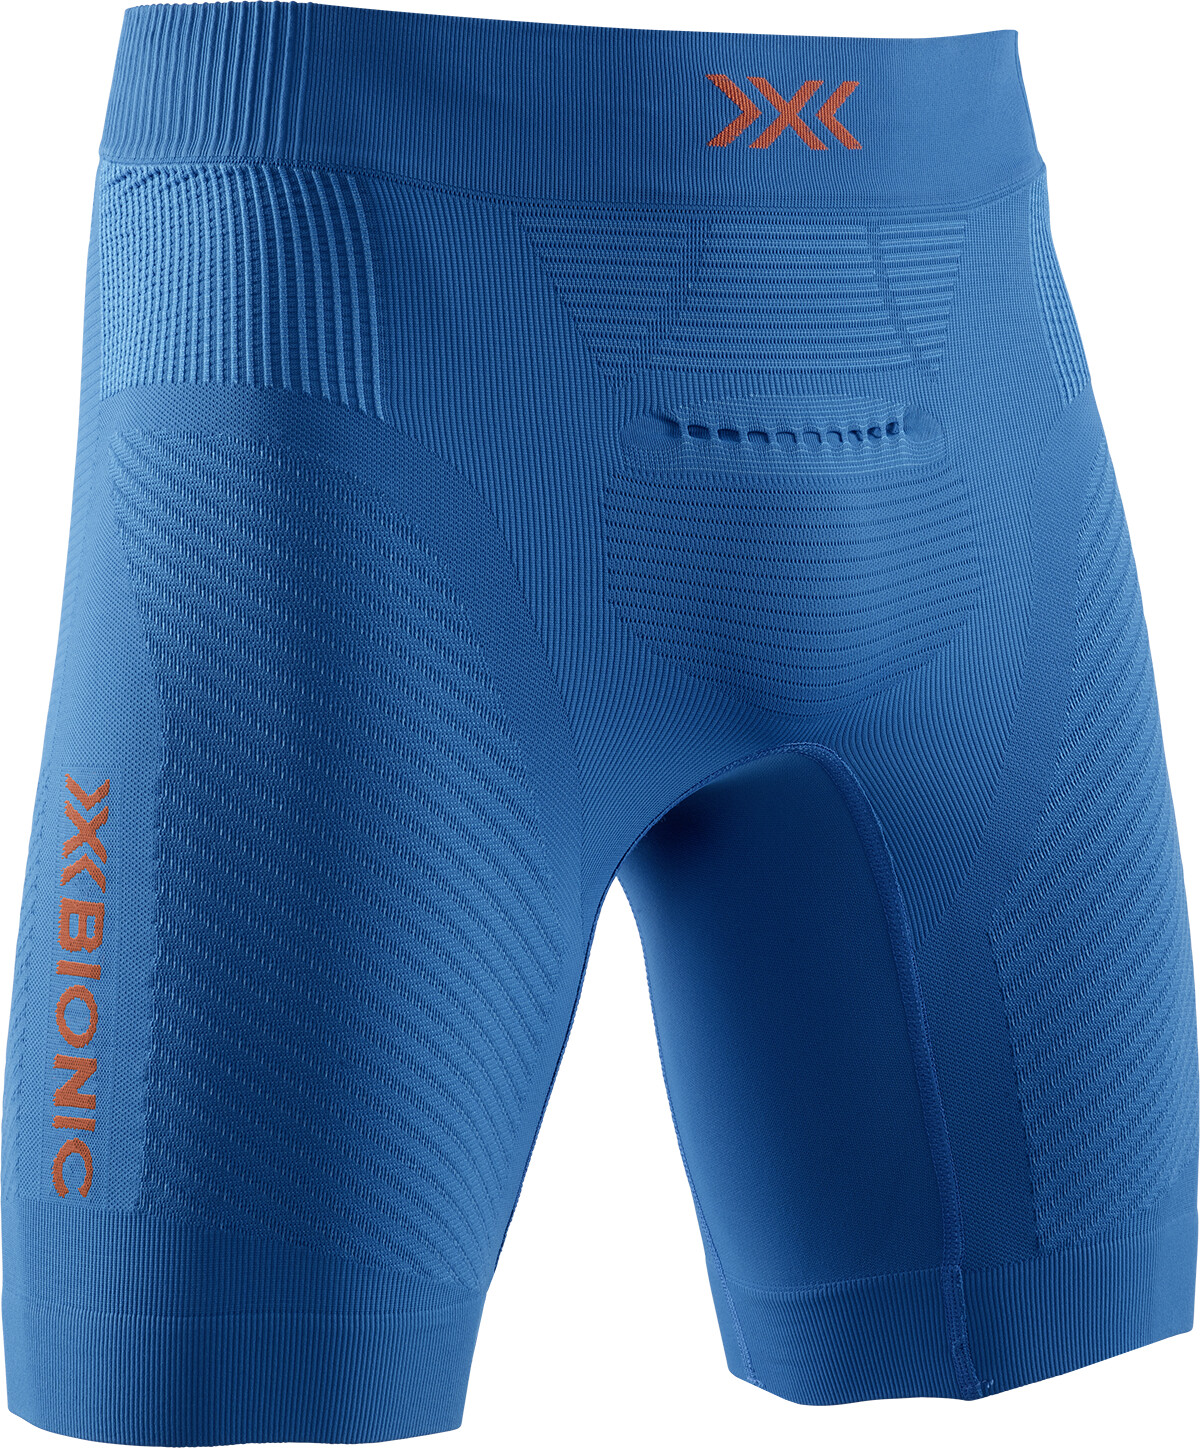 5ee8d846820f7 X-Bionic_Invent_4_0_Run_Speed_Shorts_Men_teal_blue_kurkuma_orange.jpg